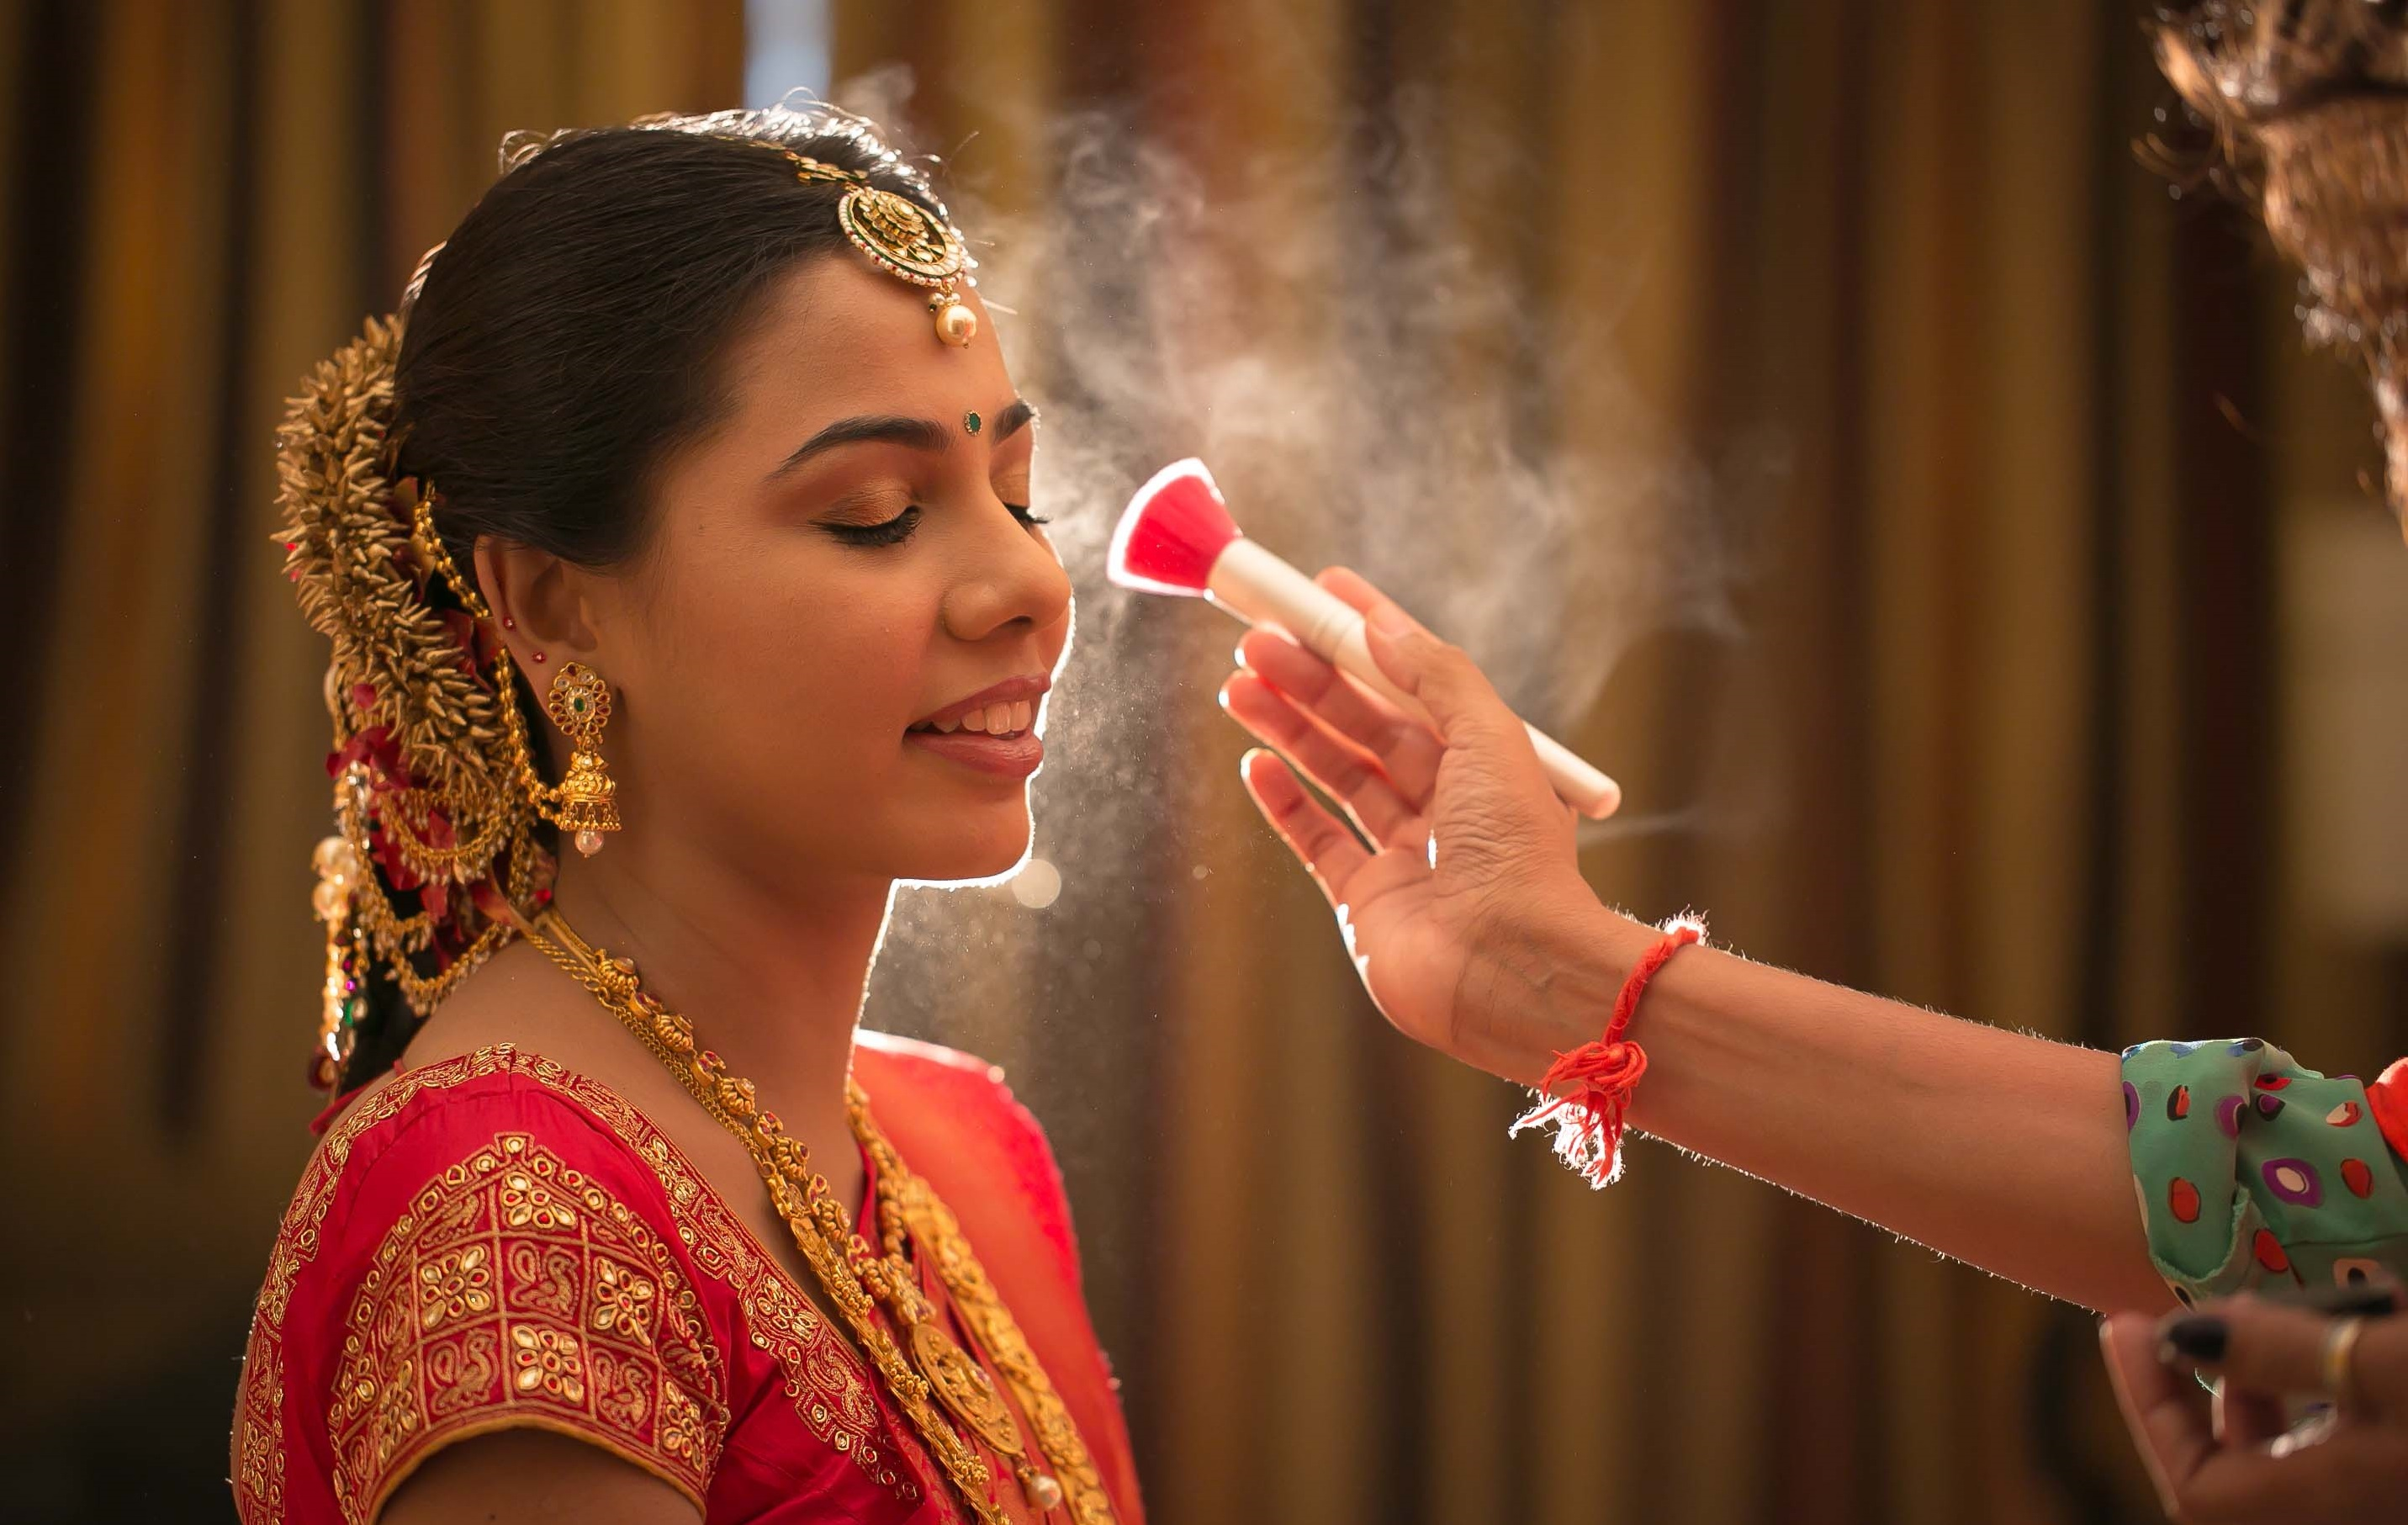 Bridal makeup in Karol bagh